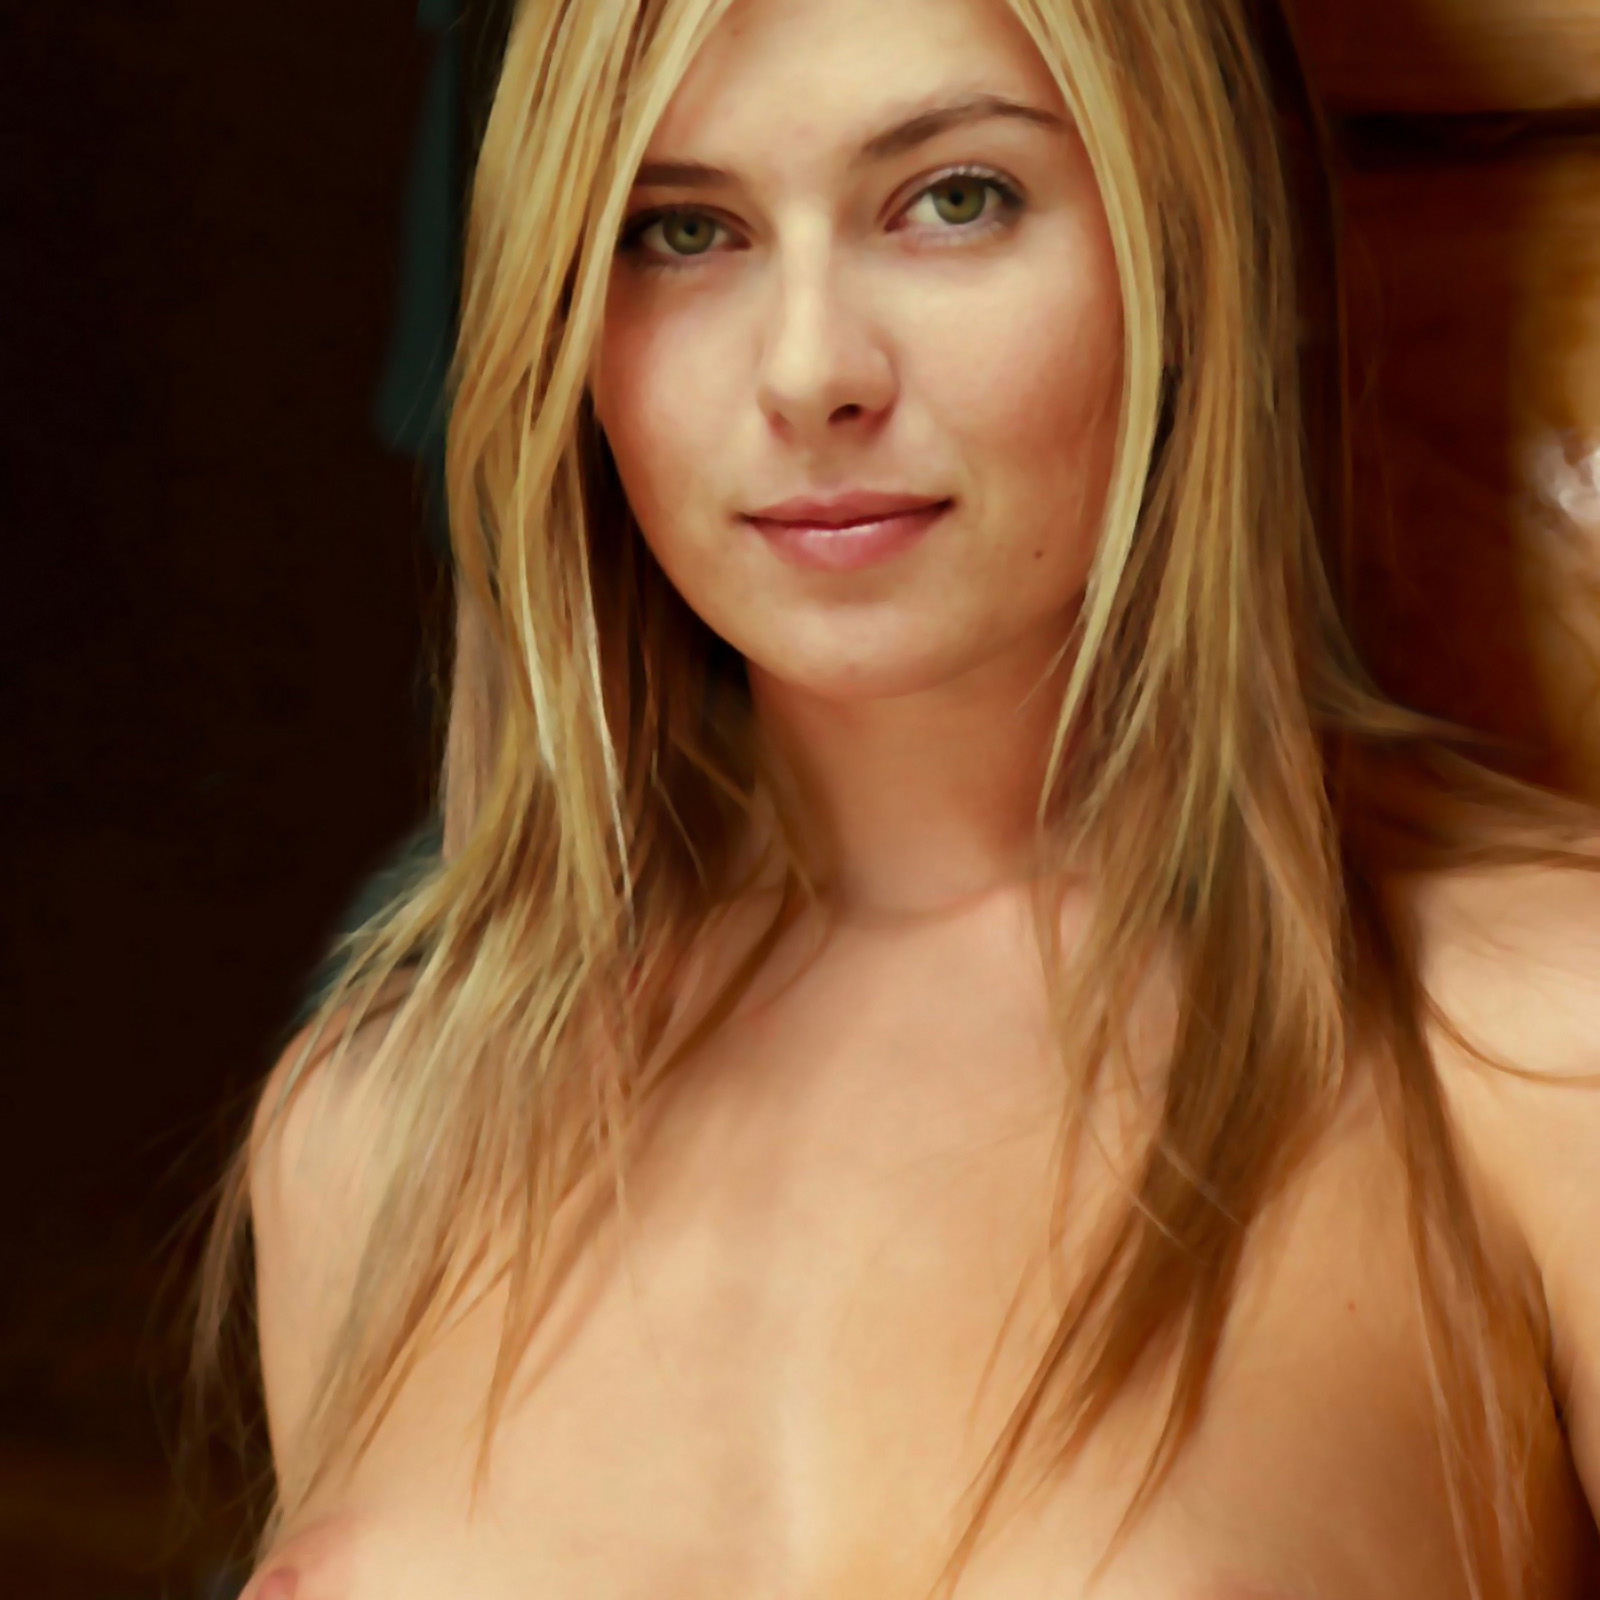 Maria Sharapova Young And Topless Show Nice Boobs Hq